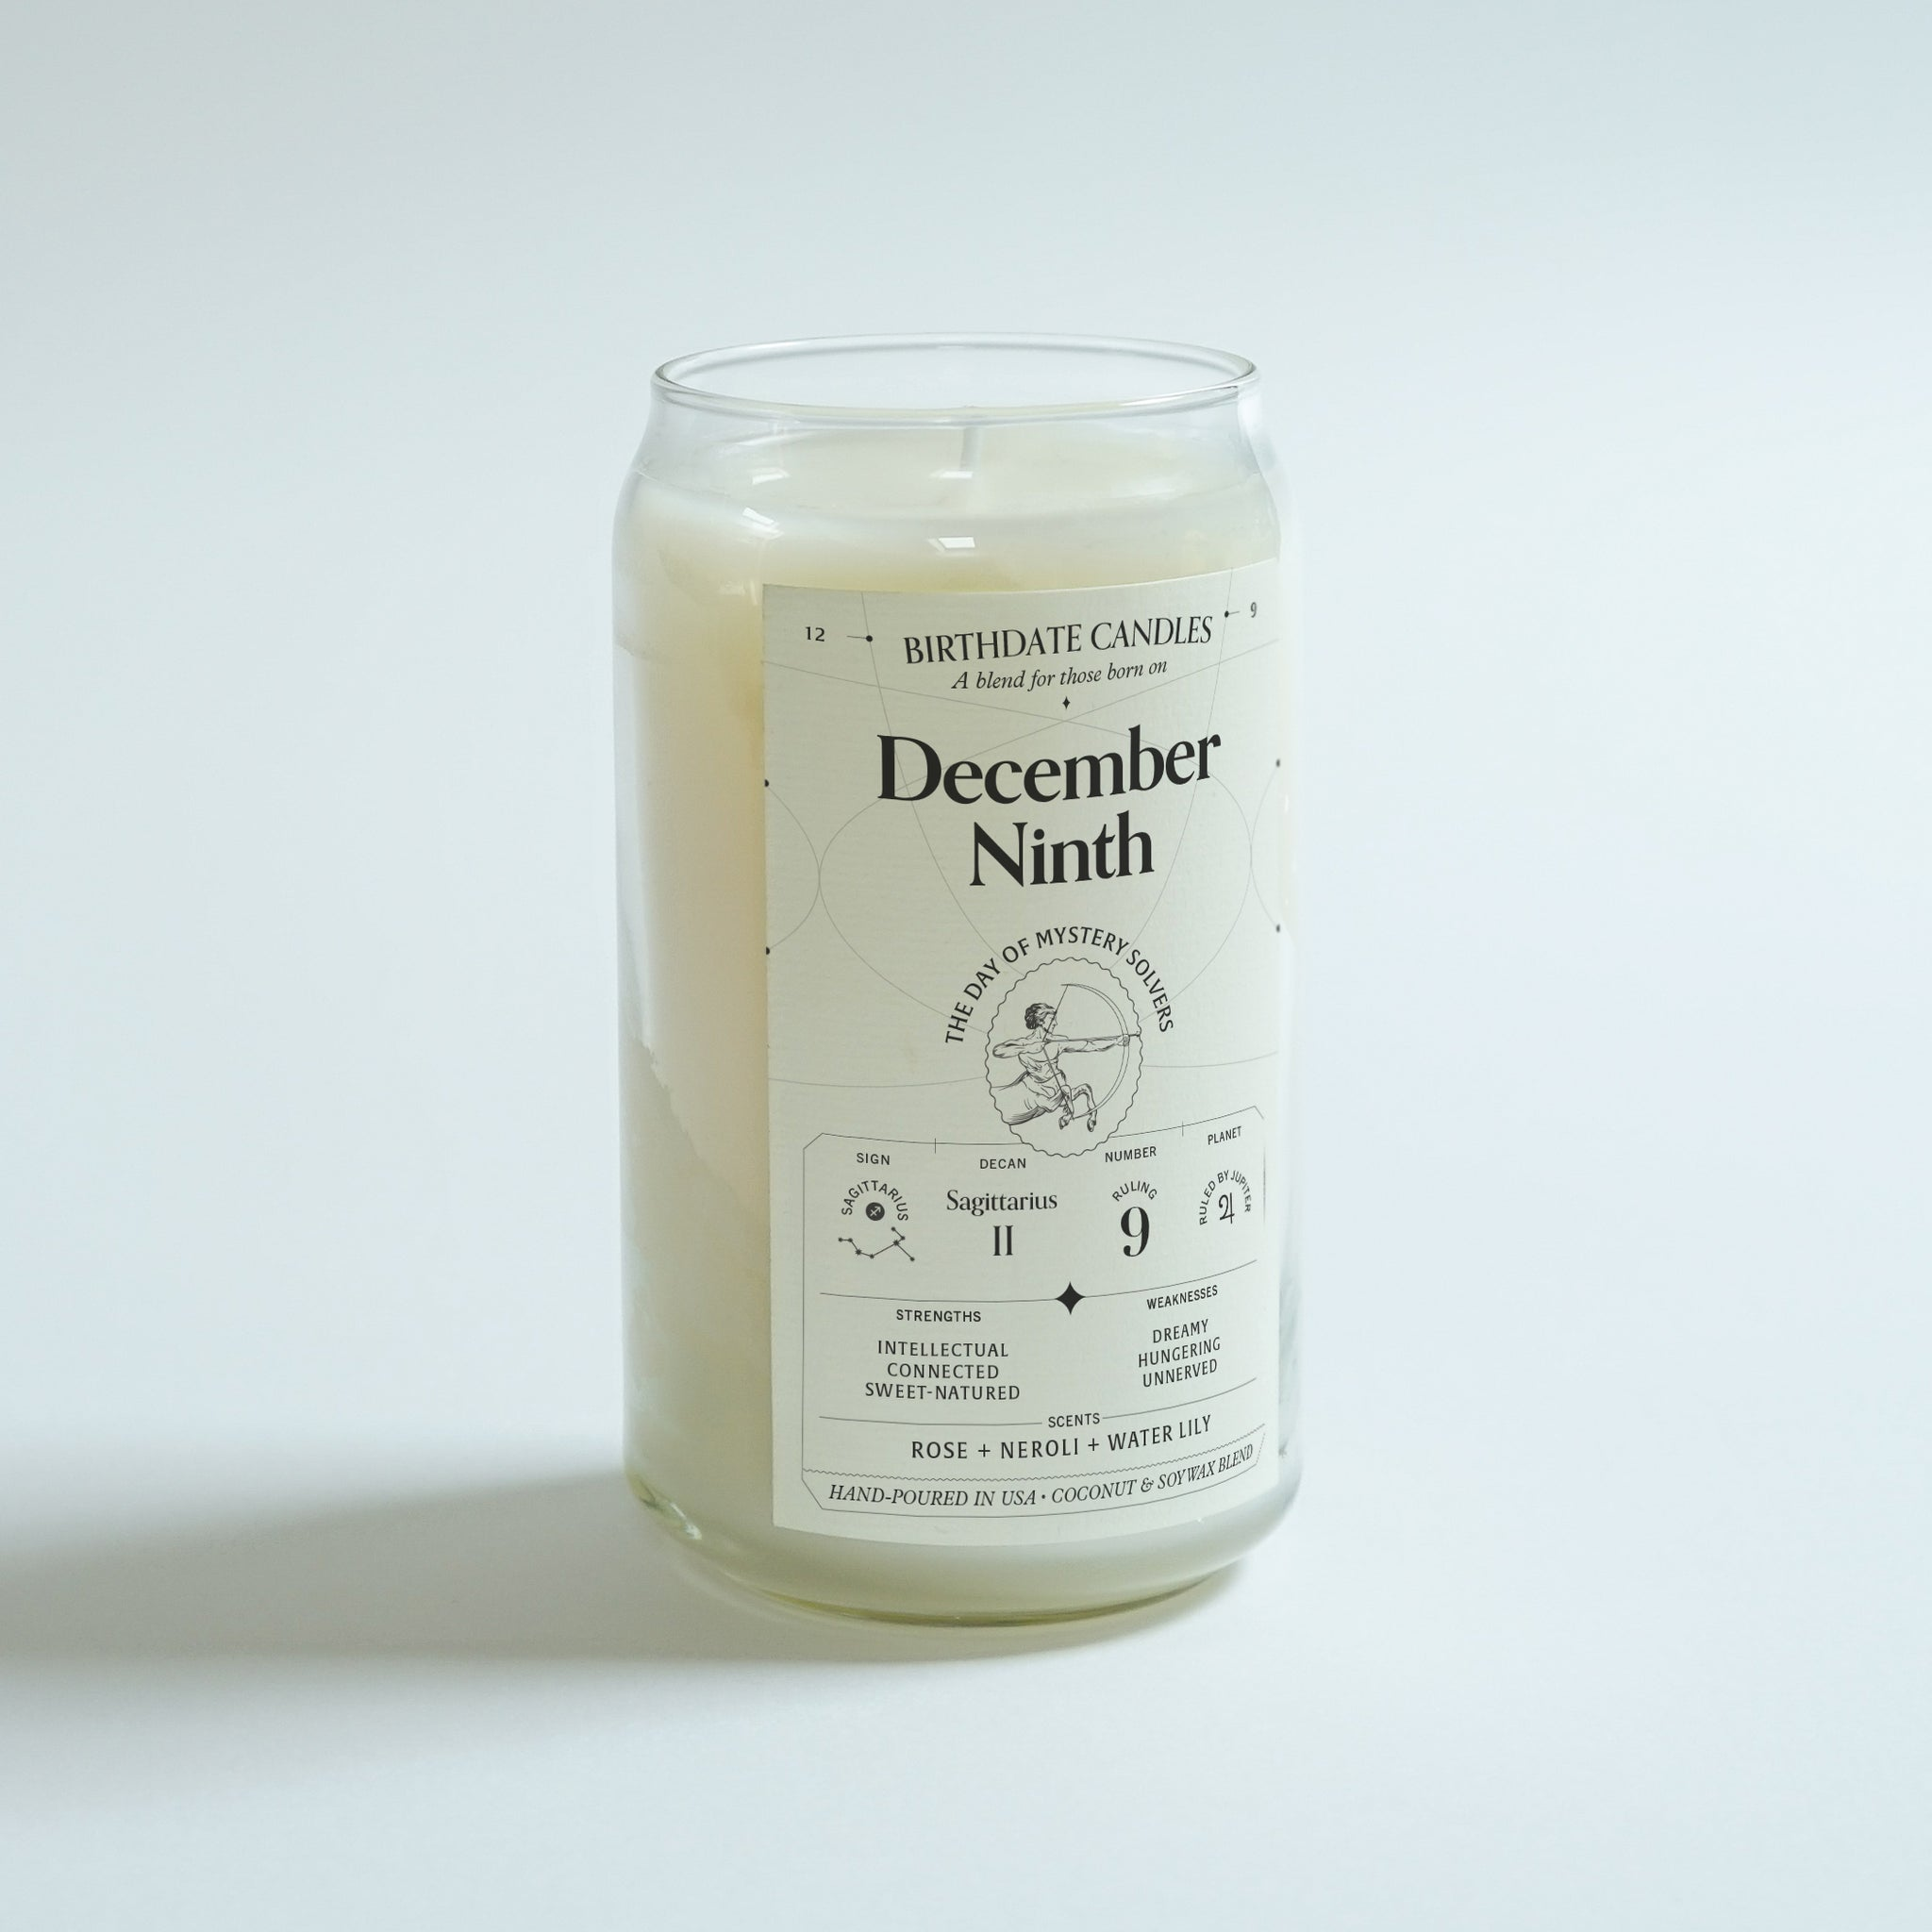 The December Ninth Birthday Candle